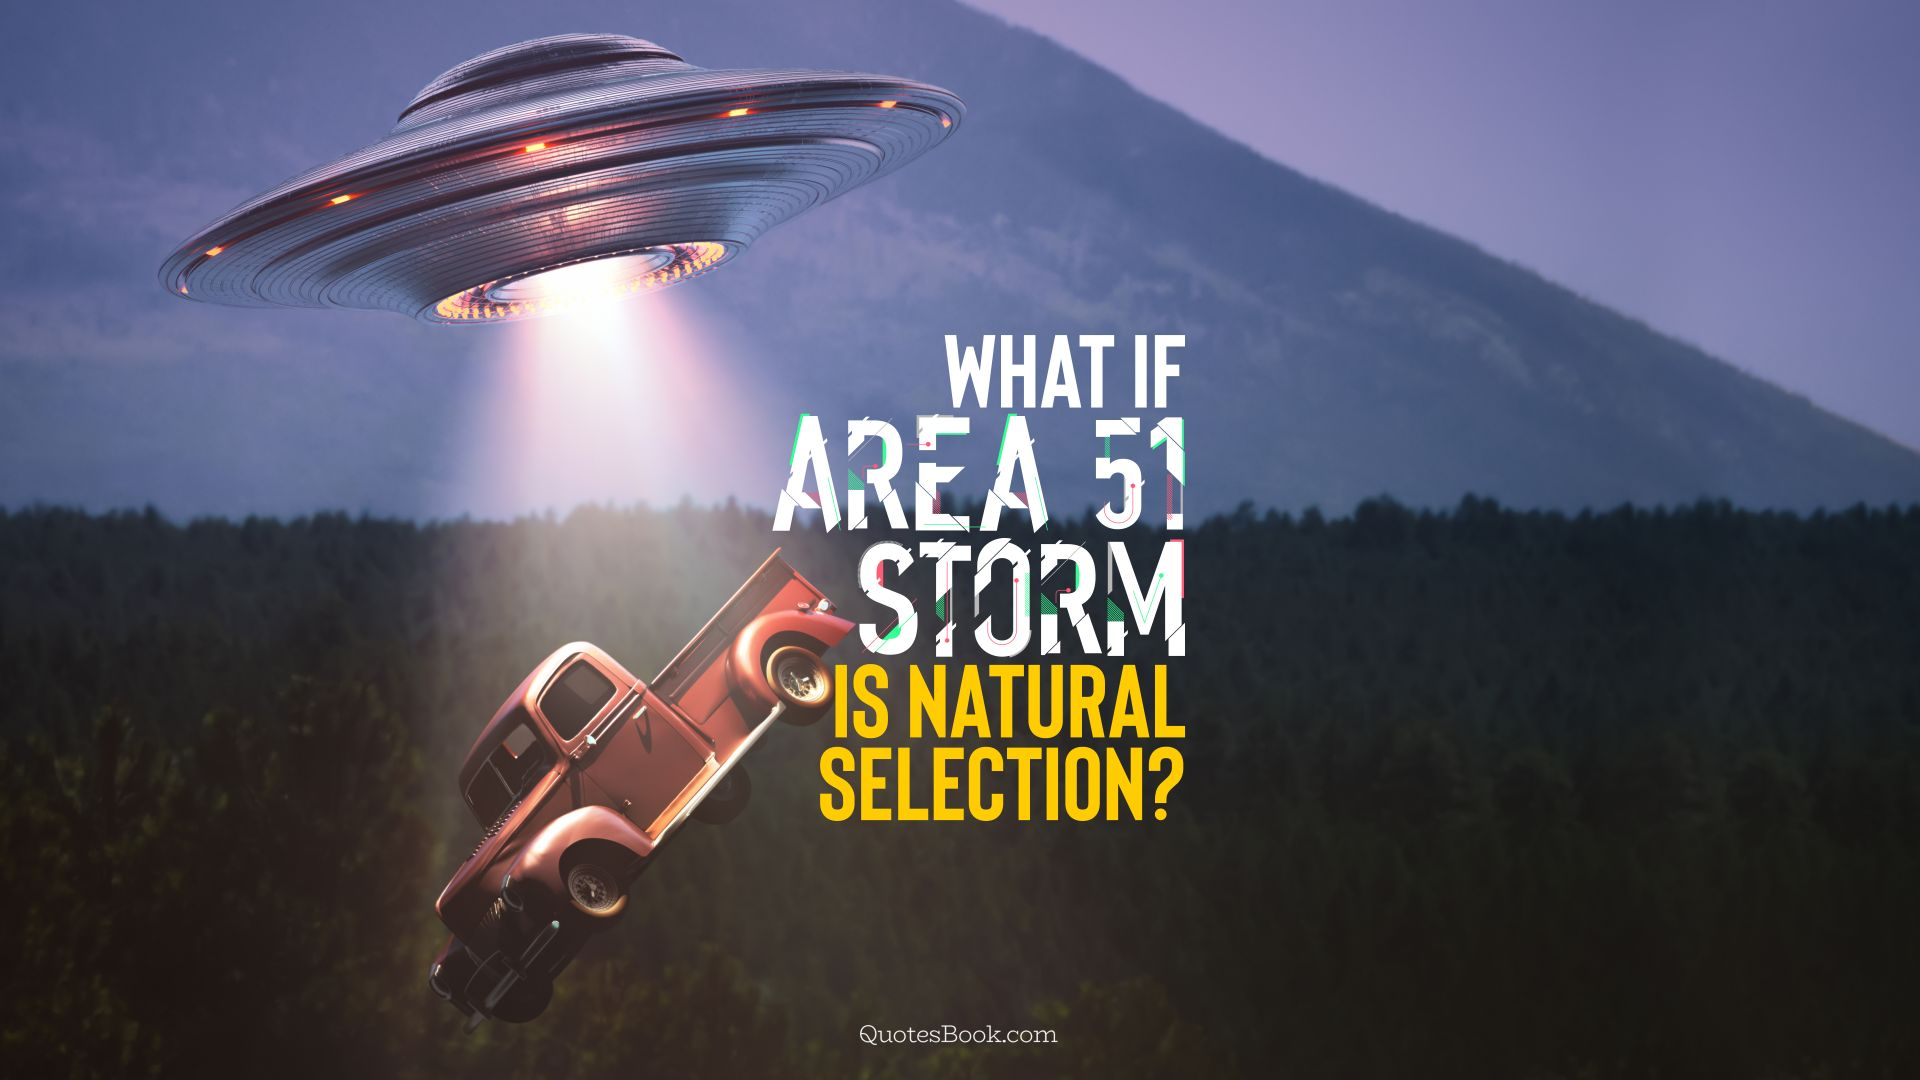 What if Area 51 storm is natural selection?